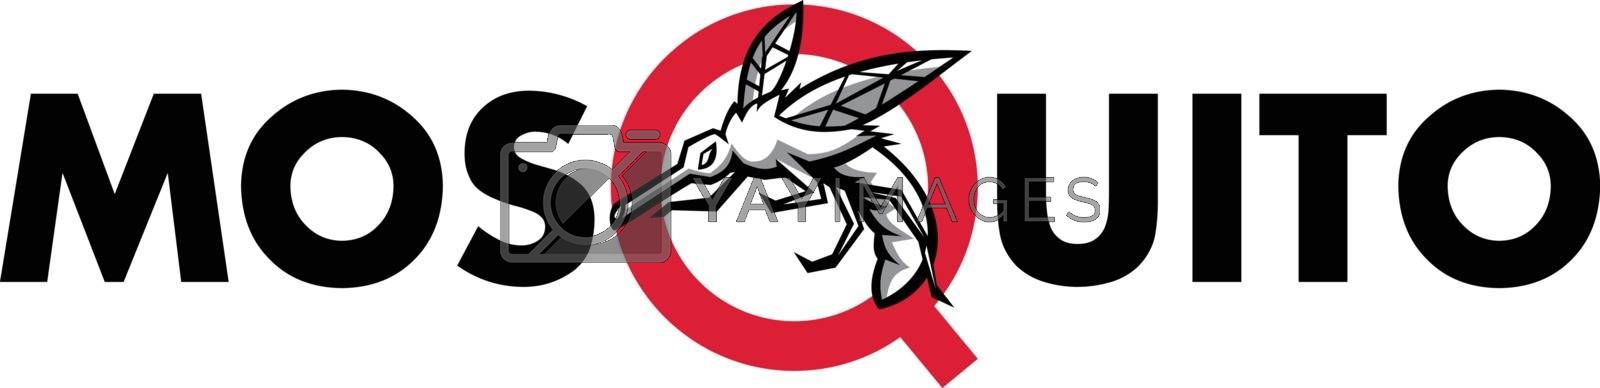 "Mascot icon illustration of an angry mosquito flying viewed from side set inside letter ""Q"" of the word or text ""mosquito"" on isolated background in retro style."